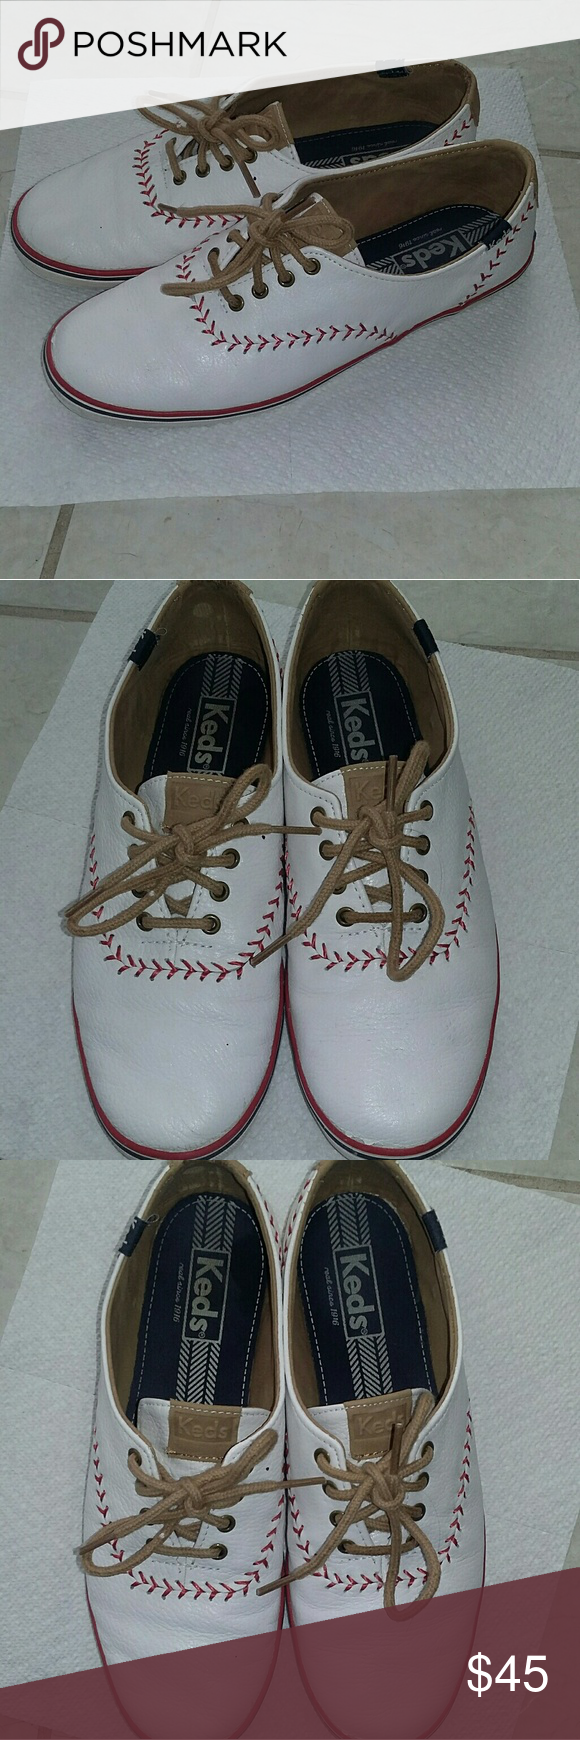 8d90ec21b6701 Keds Champion Pennant Leather Baseball Shoes These are used